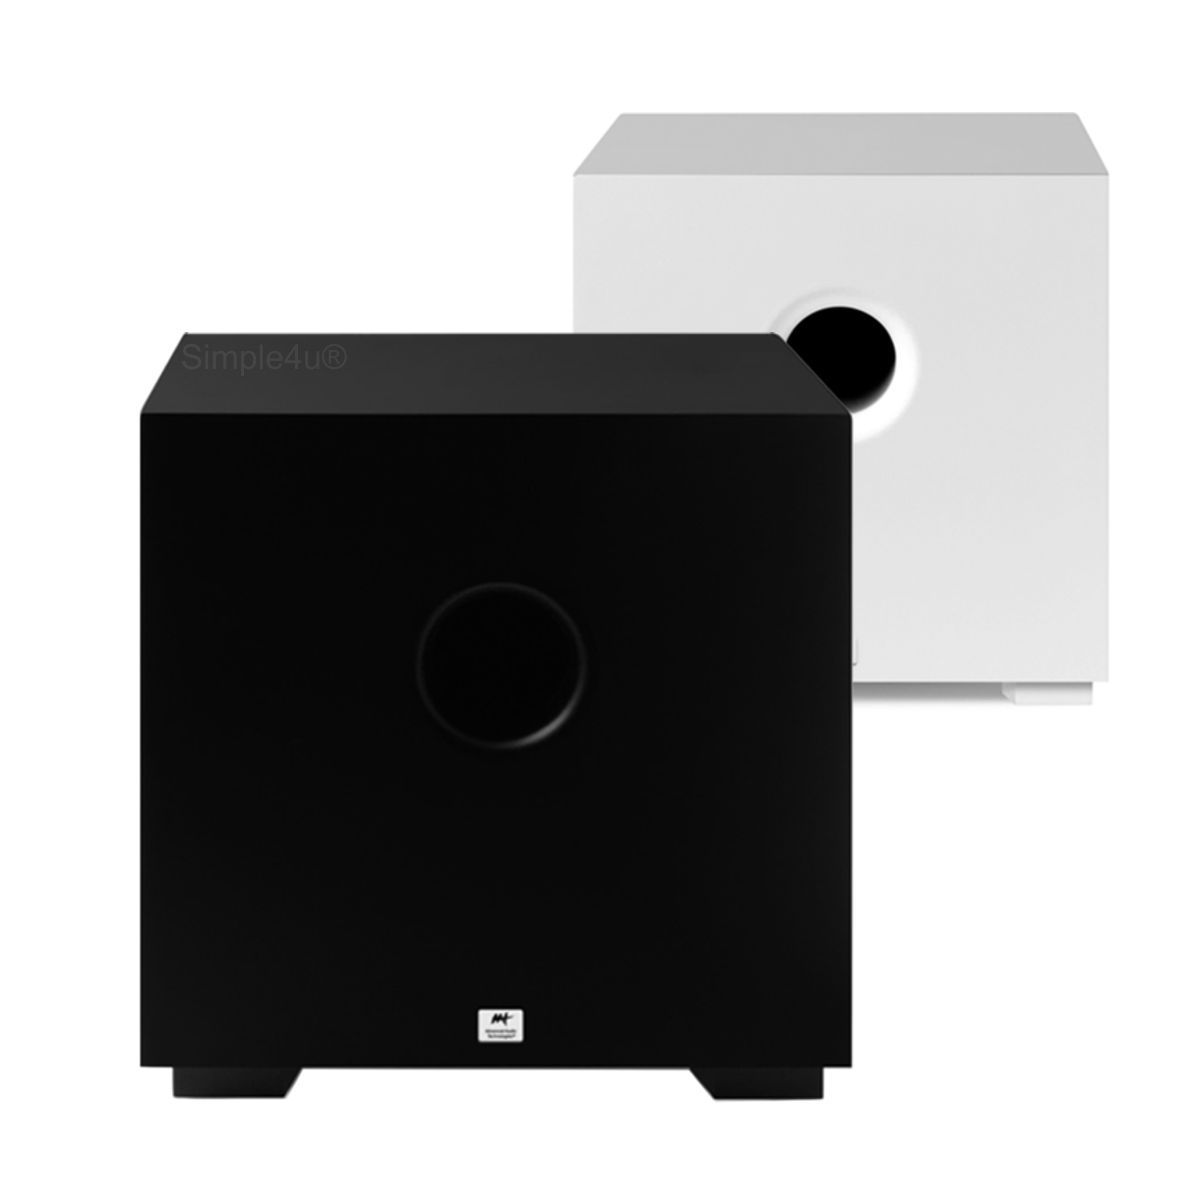 Subwoofer Ativo Compact Cube 8